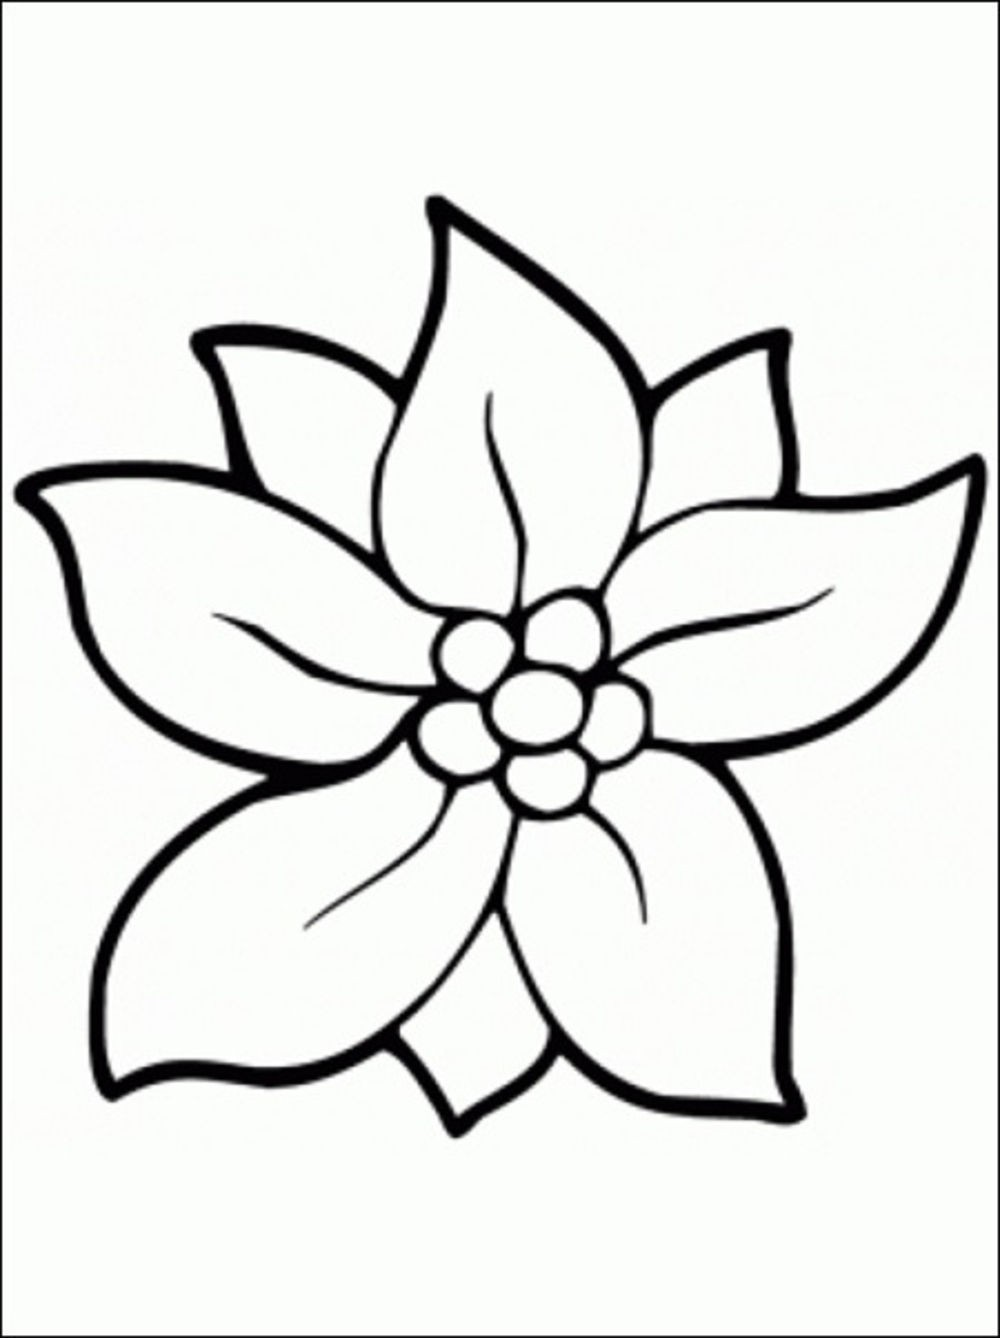 Free Flower Coloring Pages Printable Photo Album ...